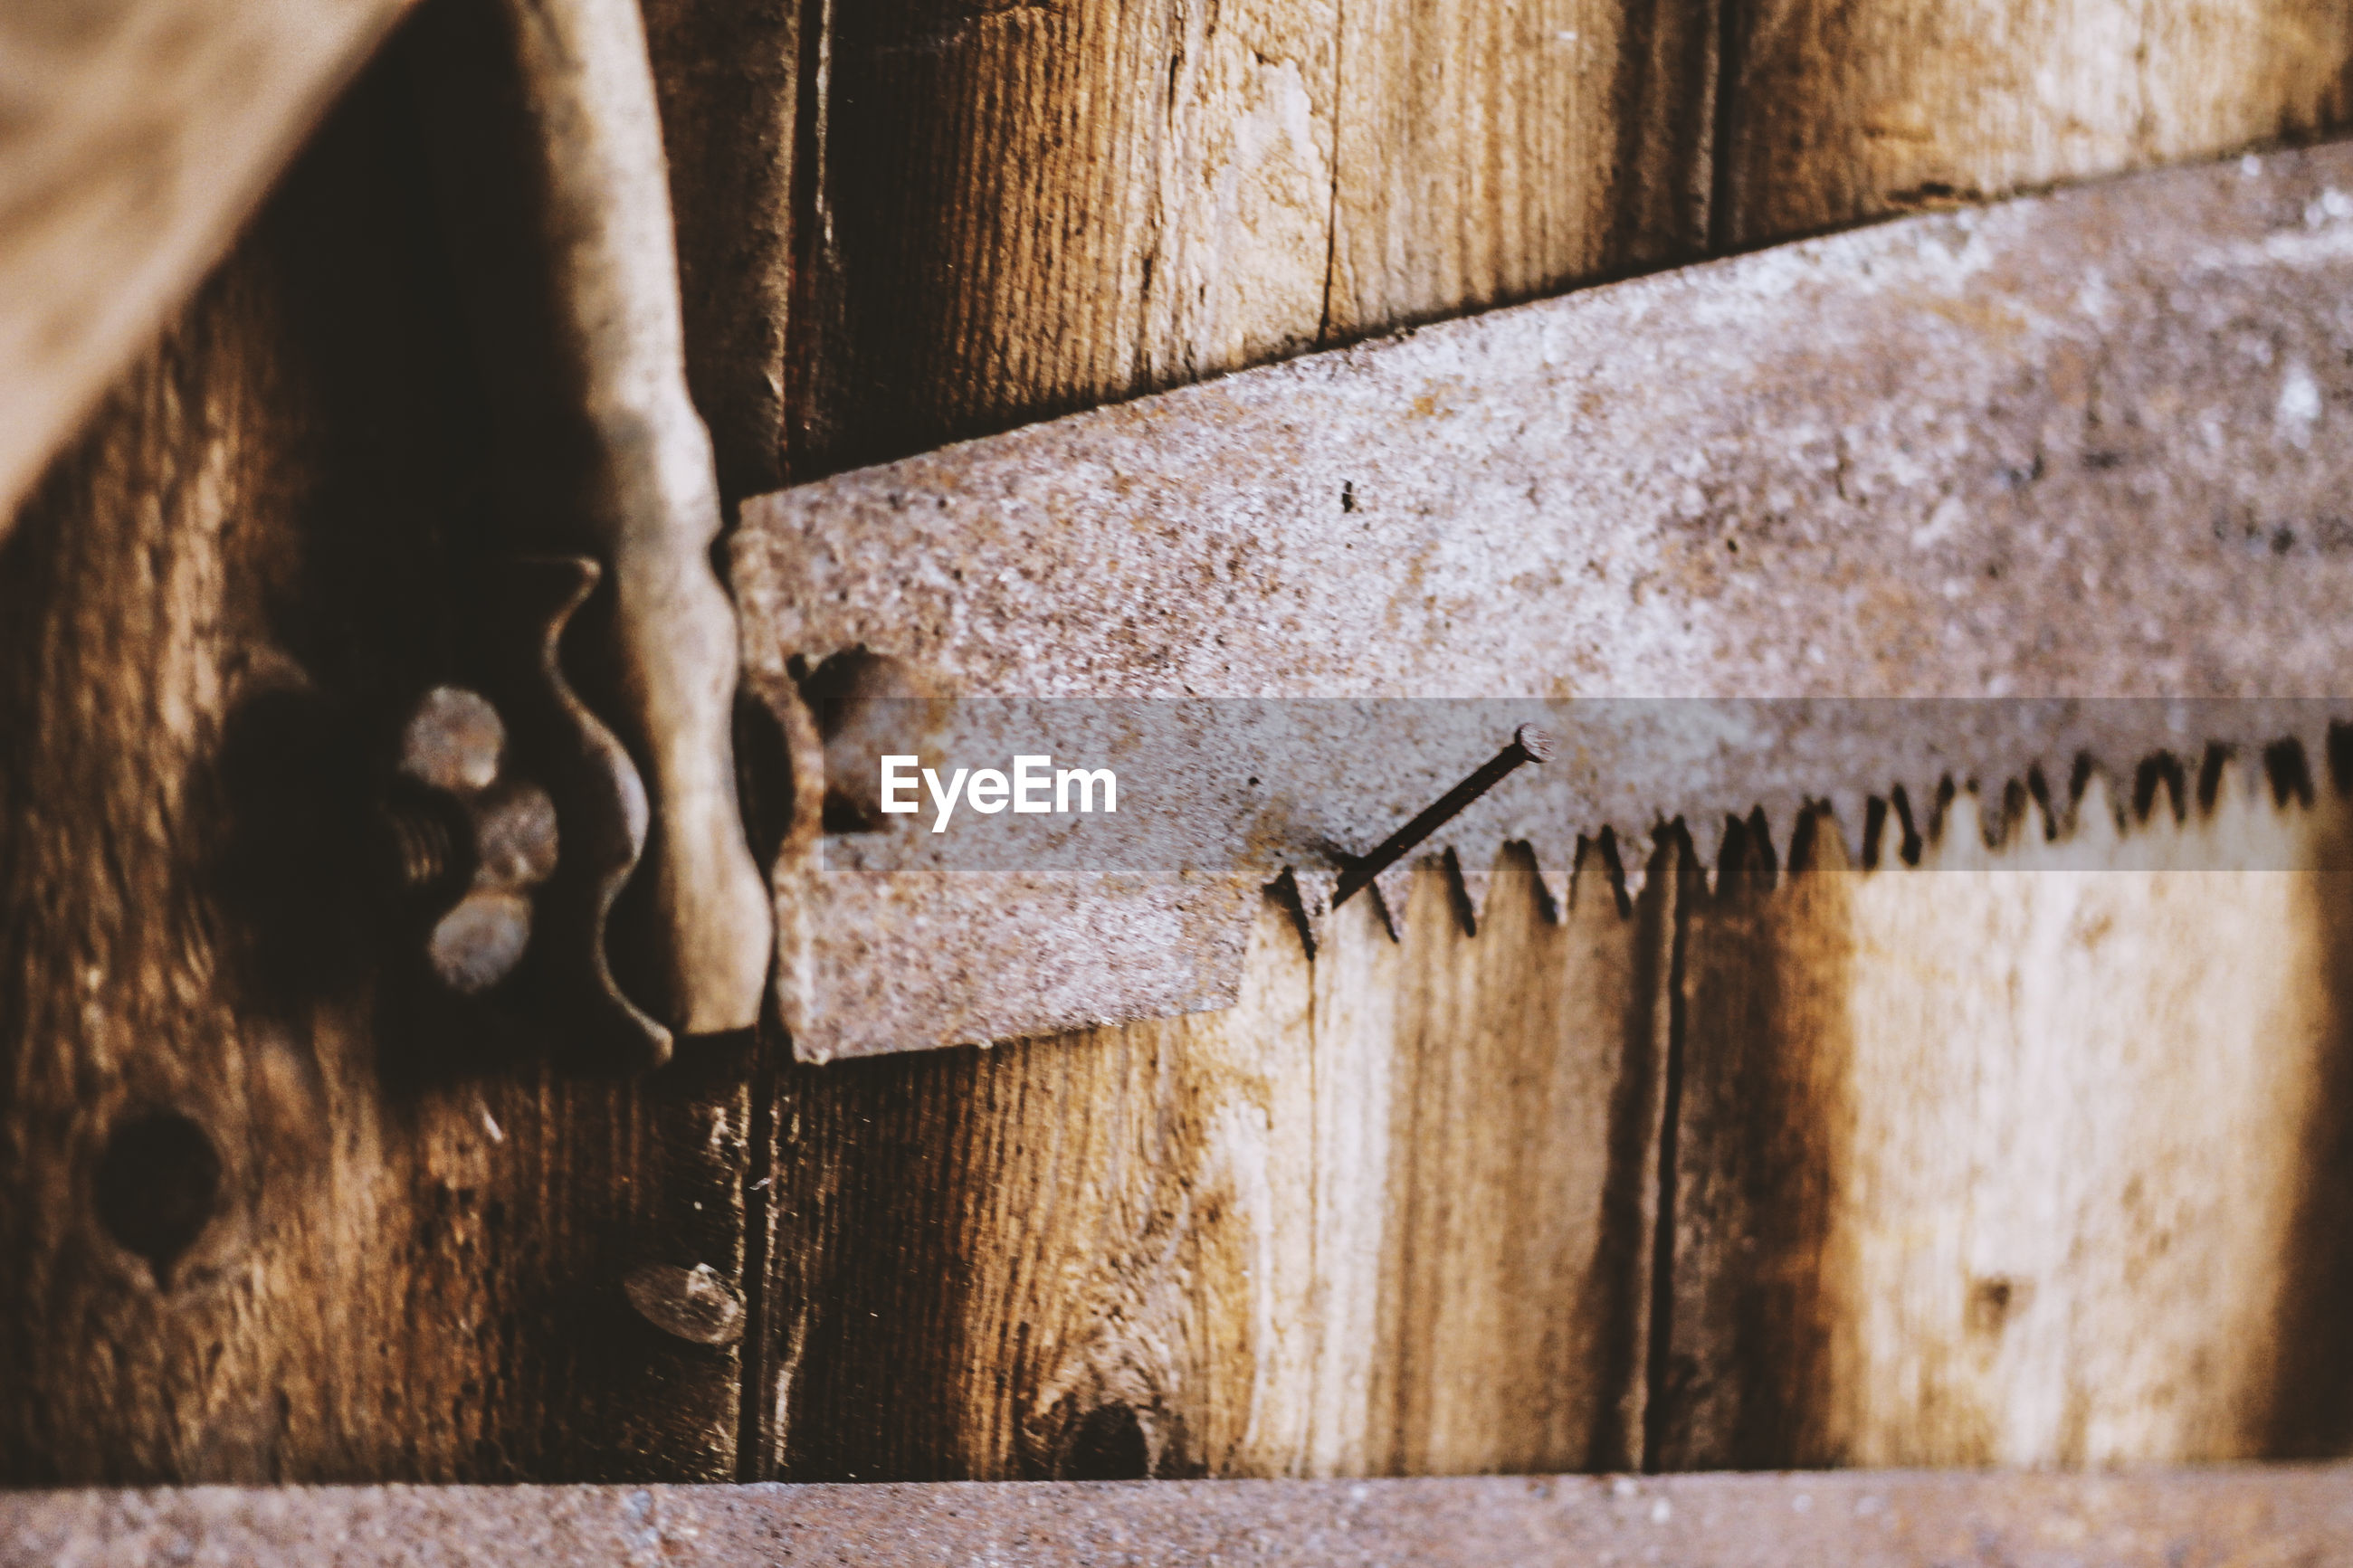 Close-up of rusty hand saw on nail against wooden wall